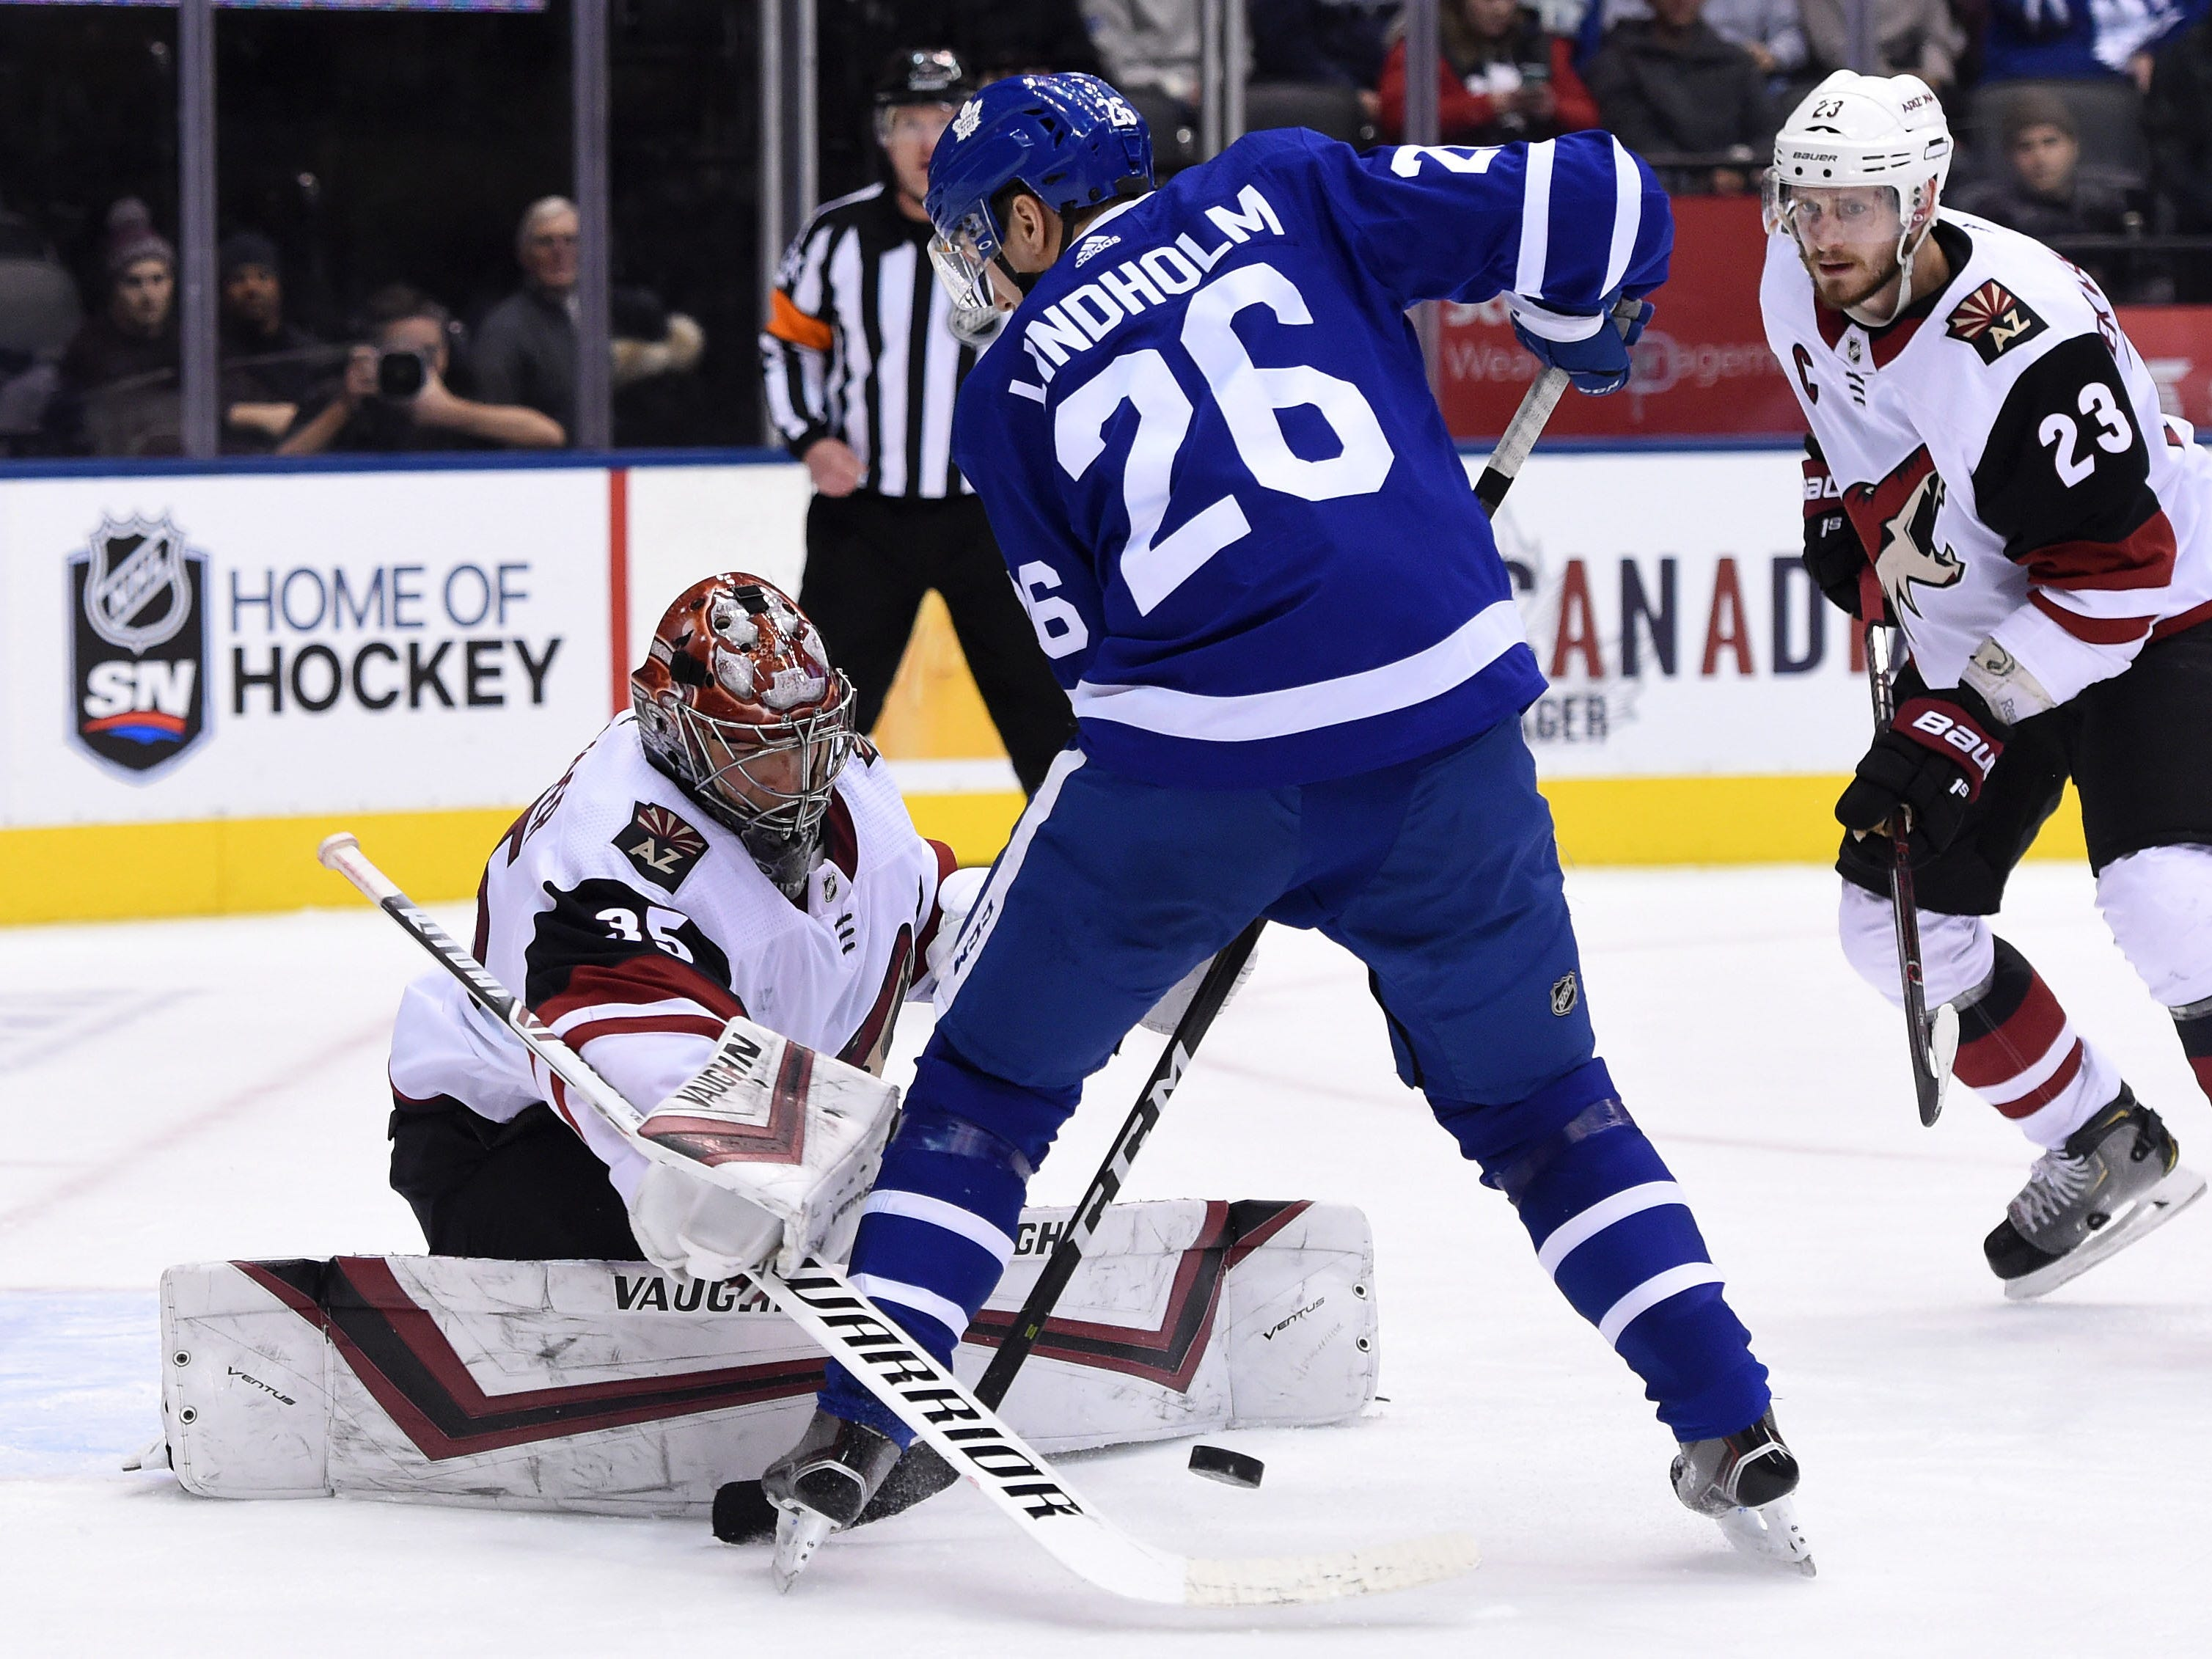 Jan 20, 2019; Toronto, Ontario, CAN;  Arizona Coyotes goalie Darcy Kuemper (35) makes a save in front of Toronto Maple Leafs forward Par Lindholm (26) in the third period at Scotiabank Arena. Mandatory Credit: Dan Hamilton-USA TODAY Sports